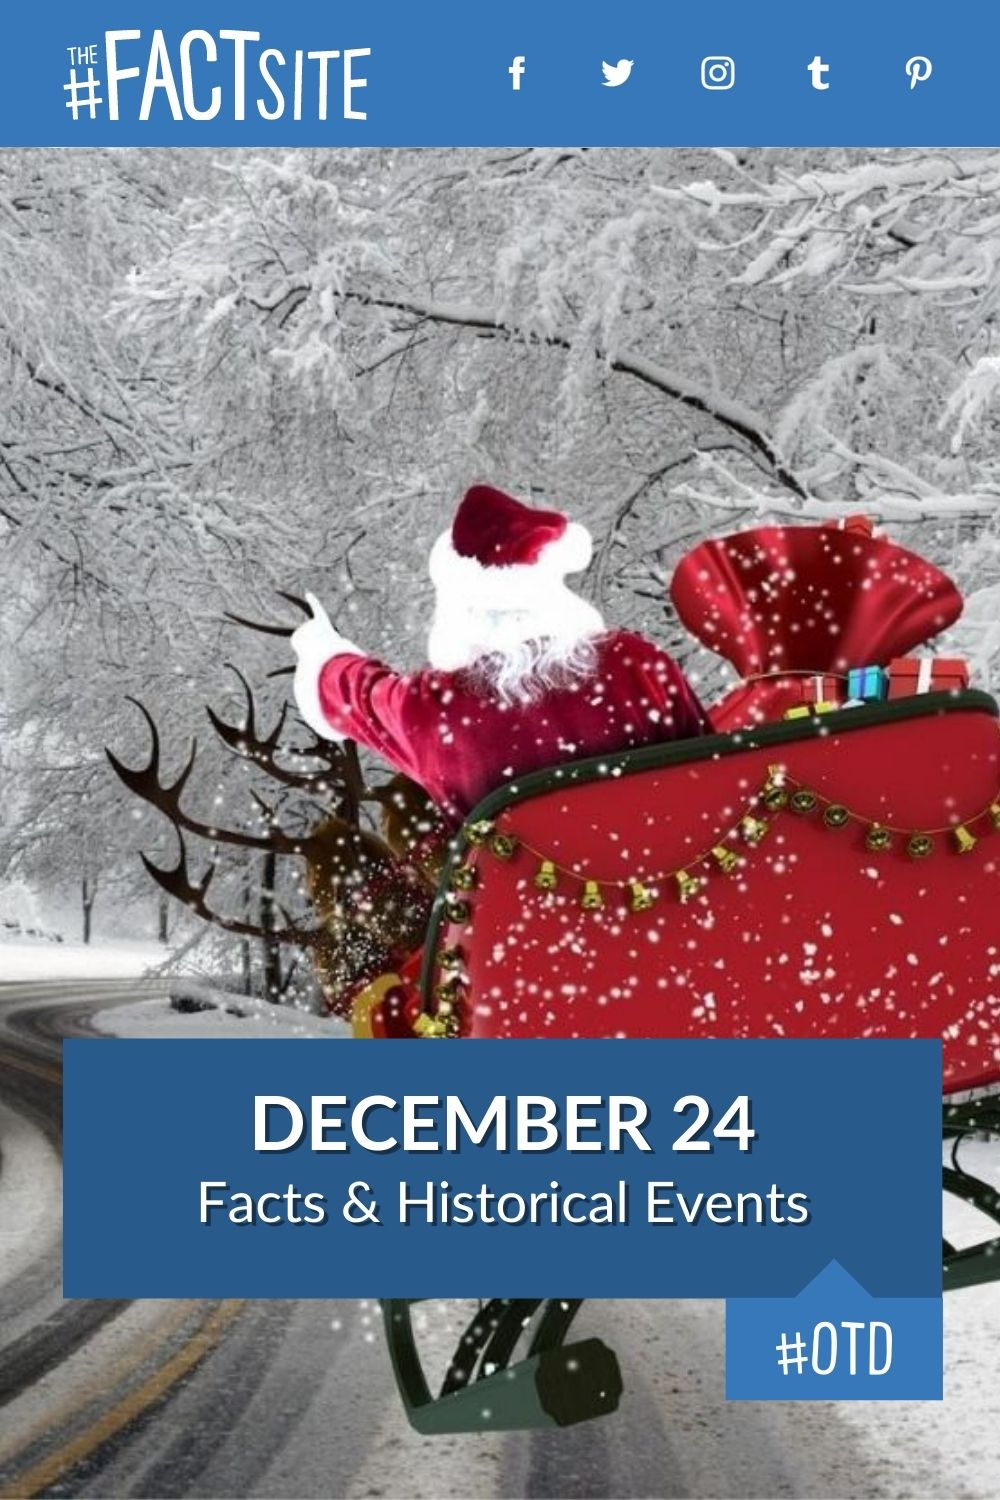 Facts & Historic Events That Happened on December 24